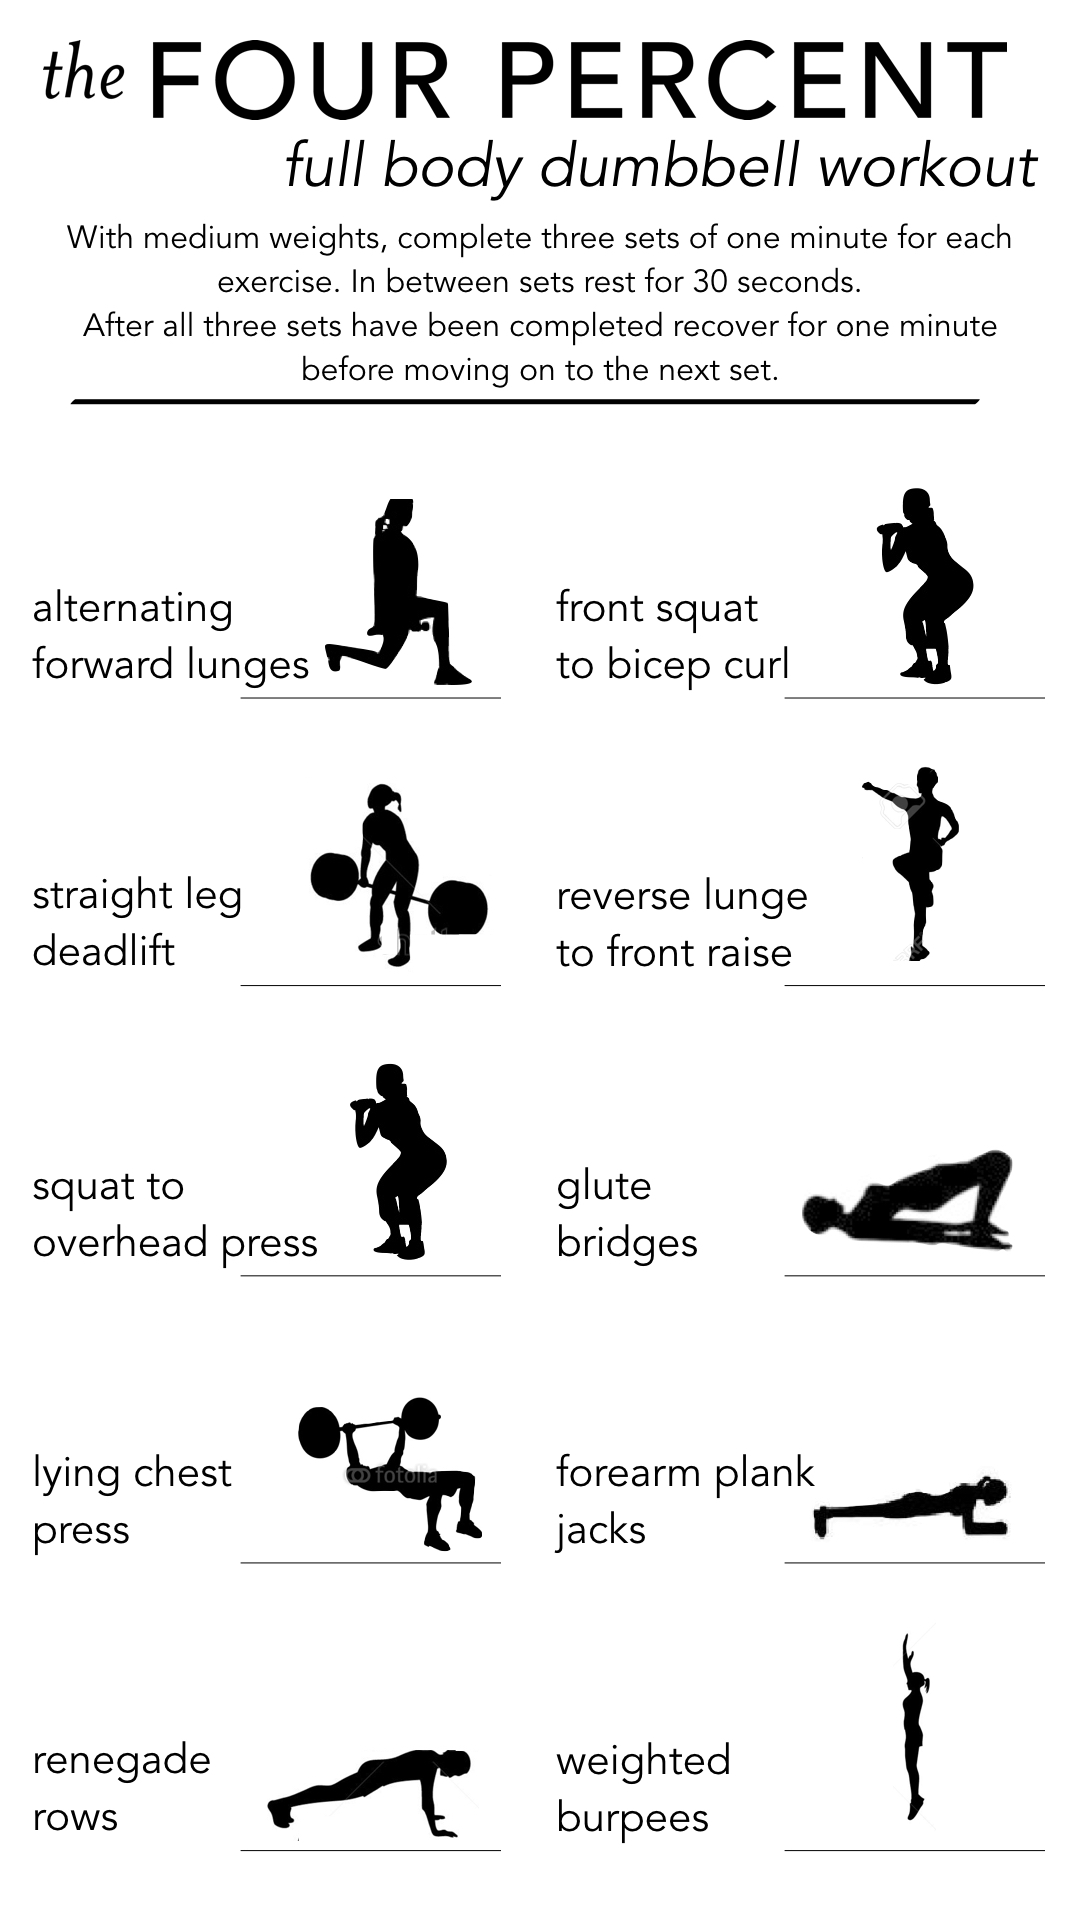 full-body-dumbbell-workout